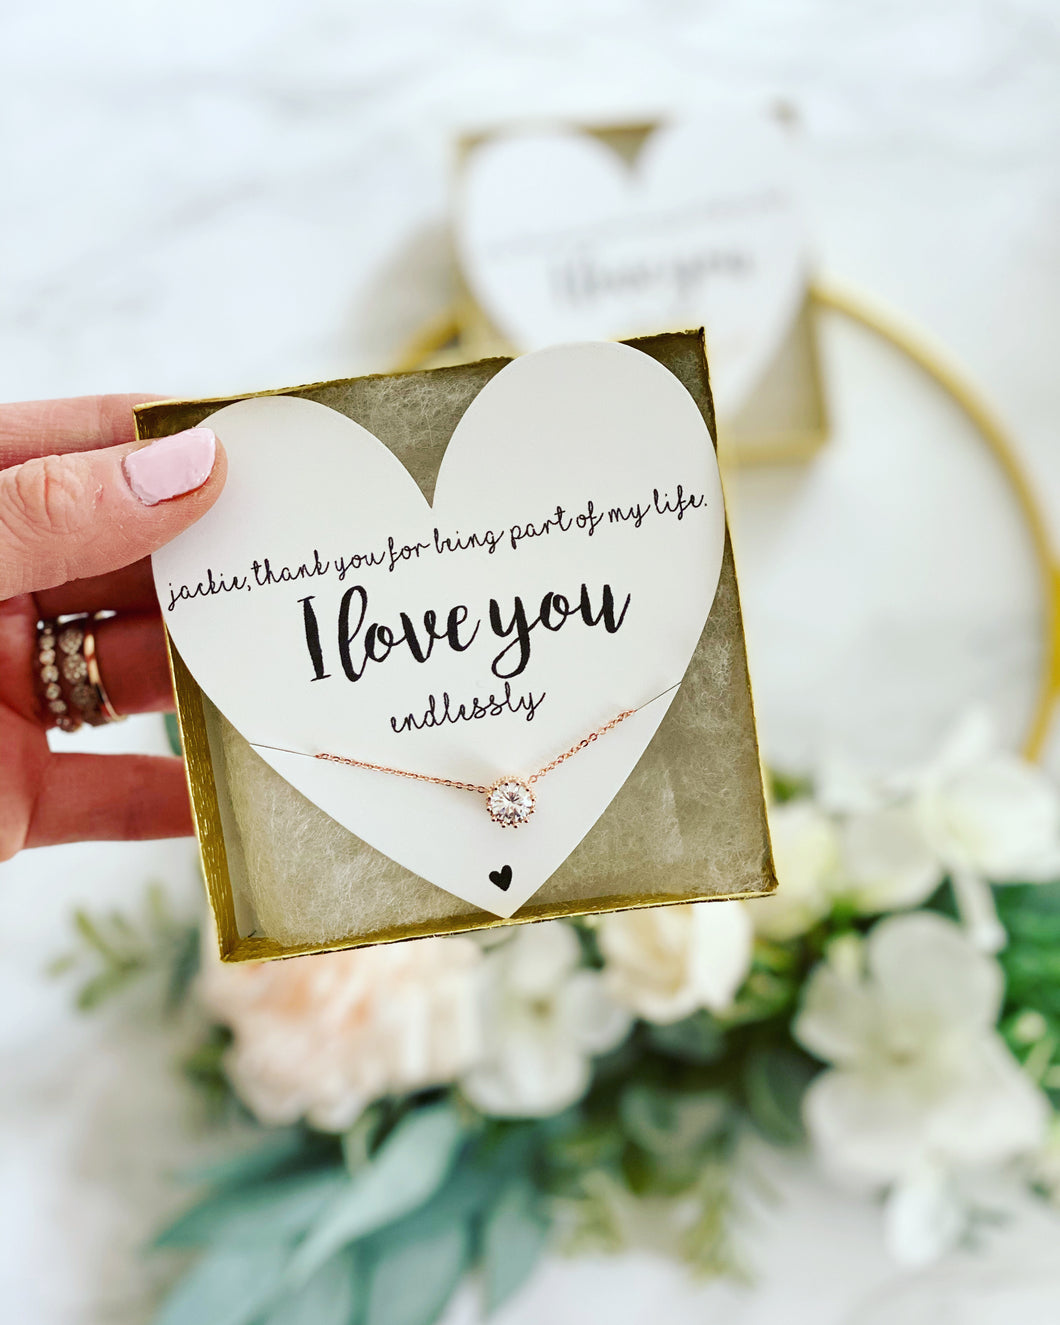 I love you Endlessly CZ Necklace!